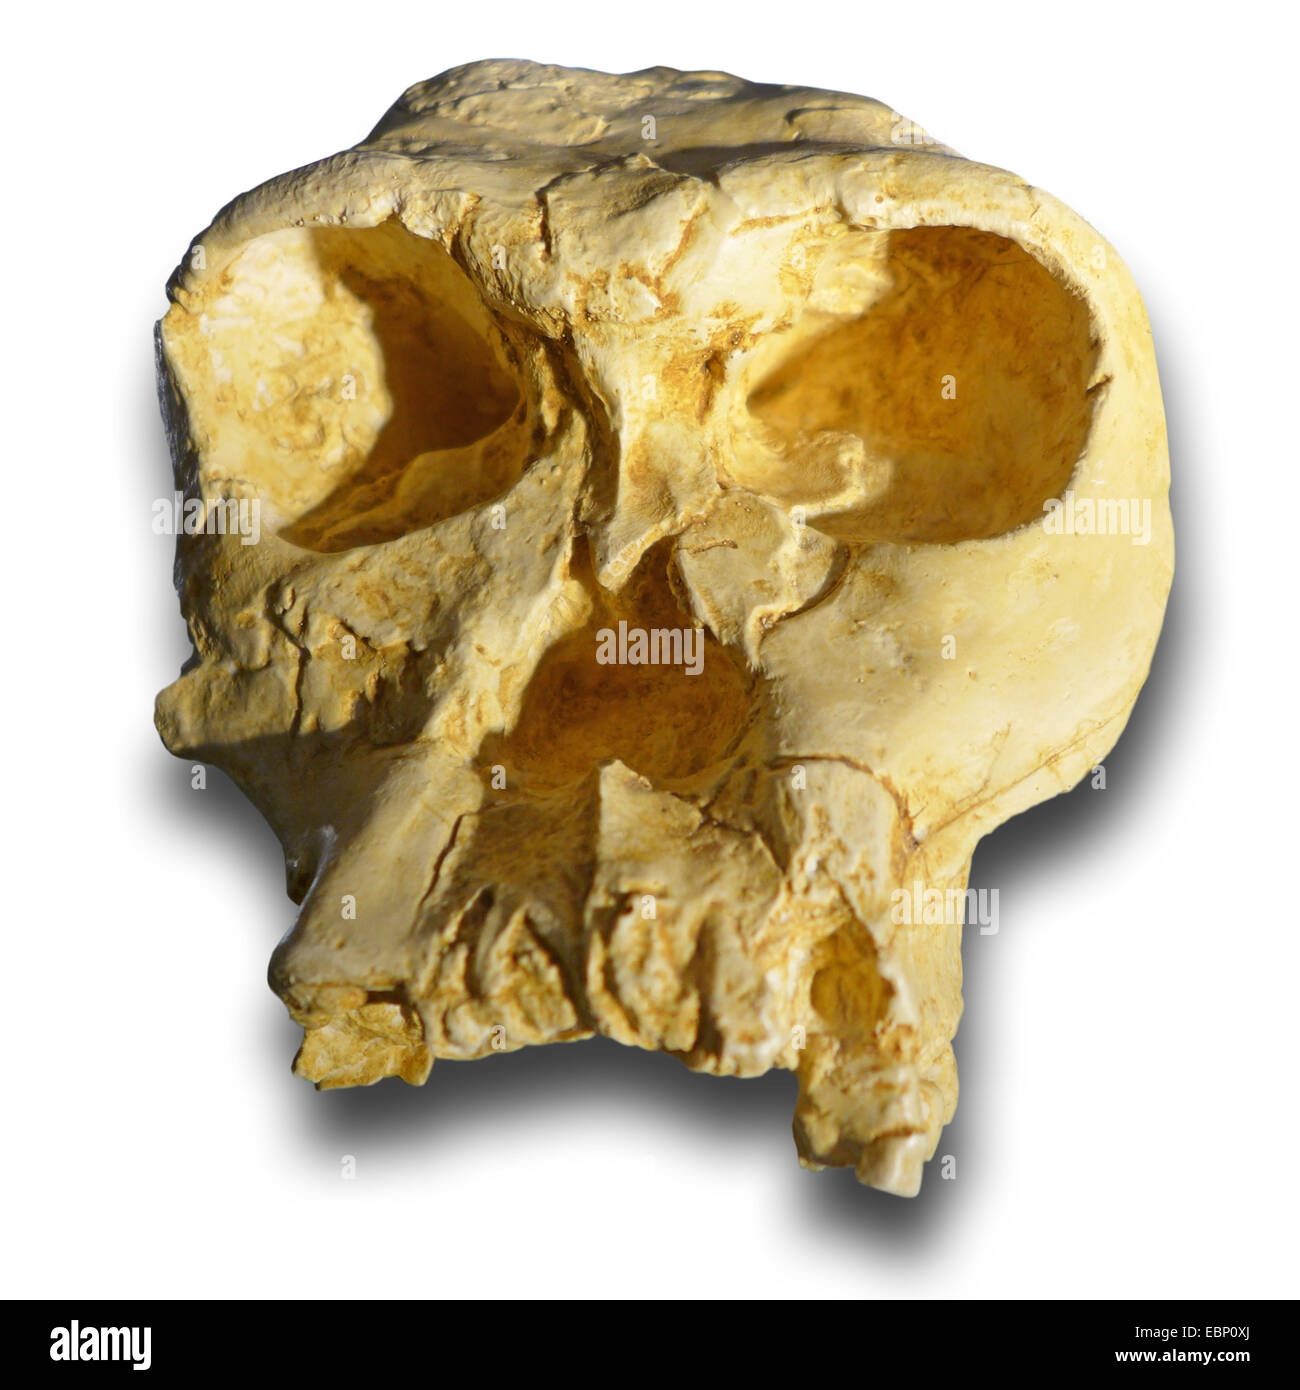 Handy man (Homo habilis), skull of a prehistoric human beeing from neogene (25-2,5 million years), location Africa - Stock Image